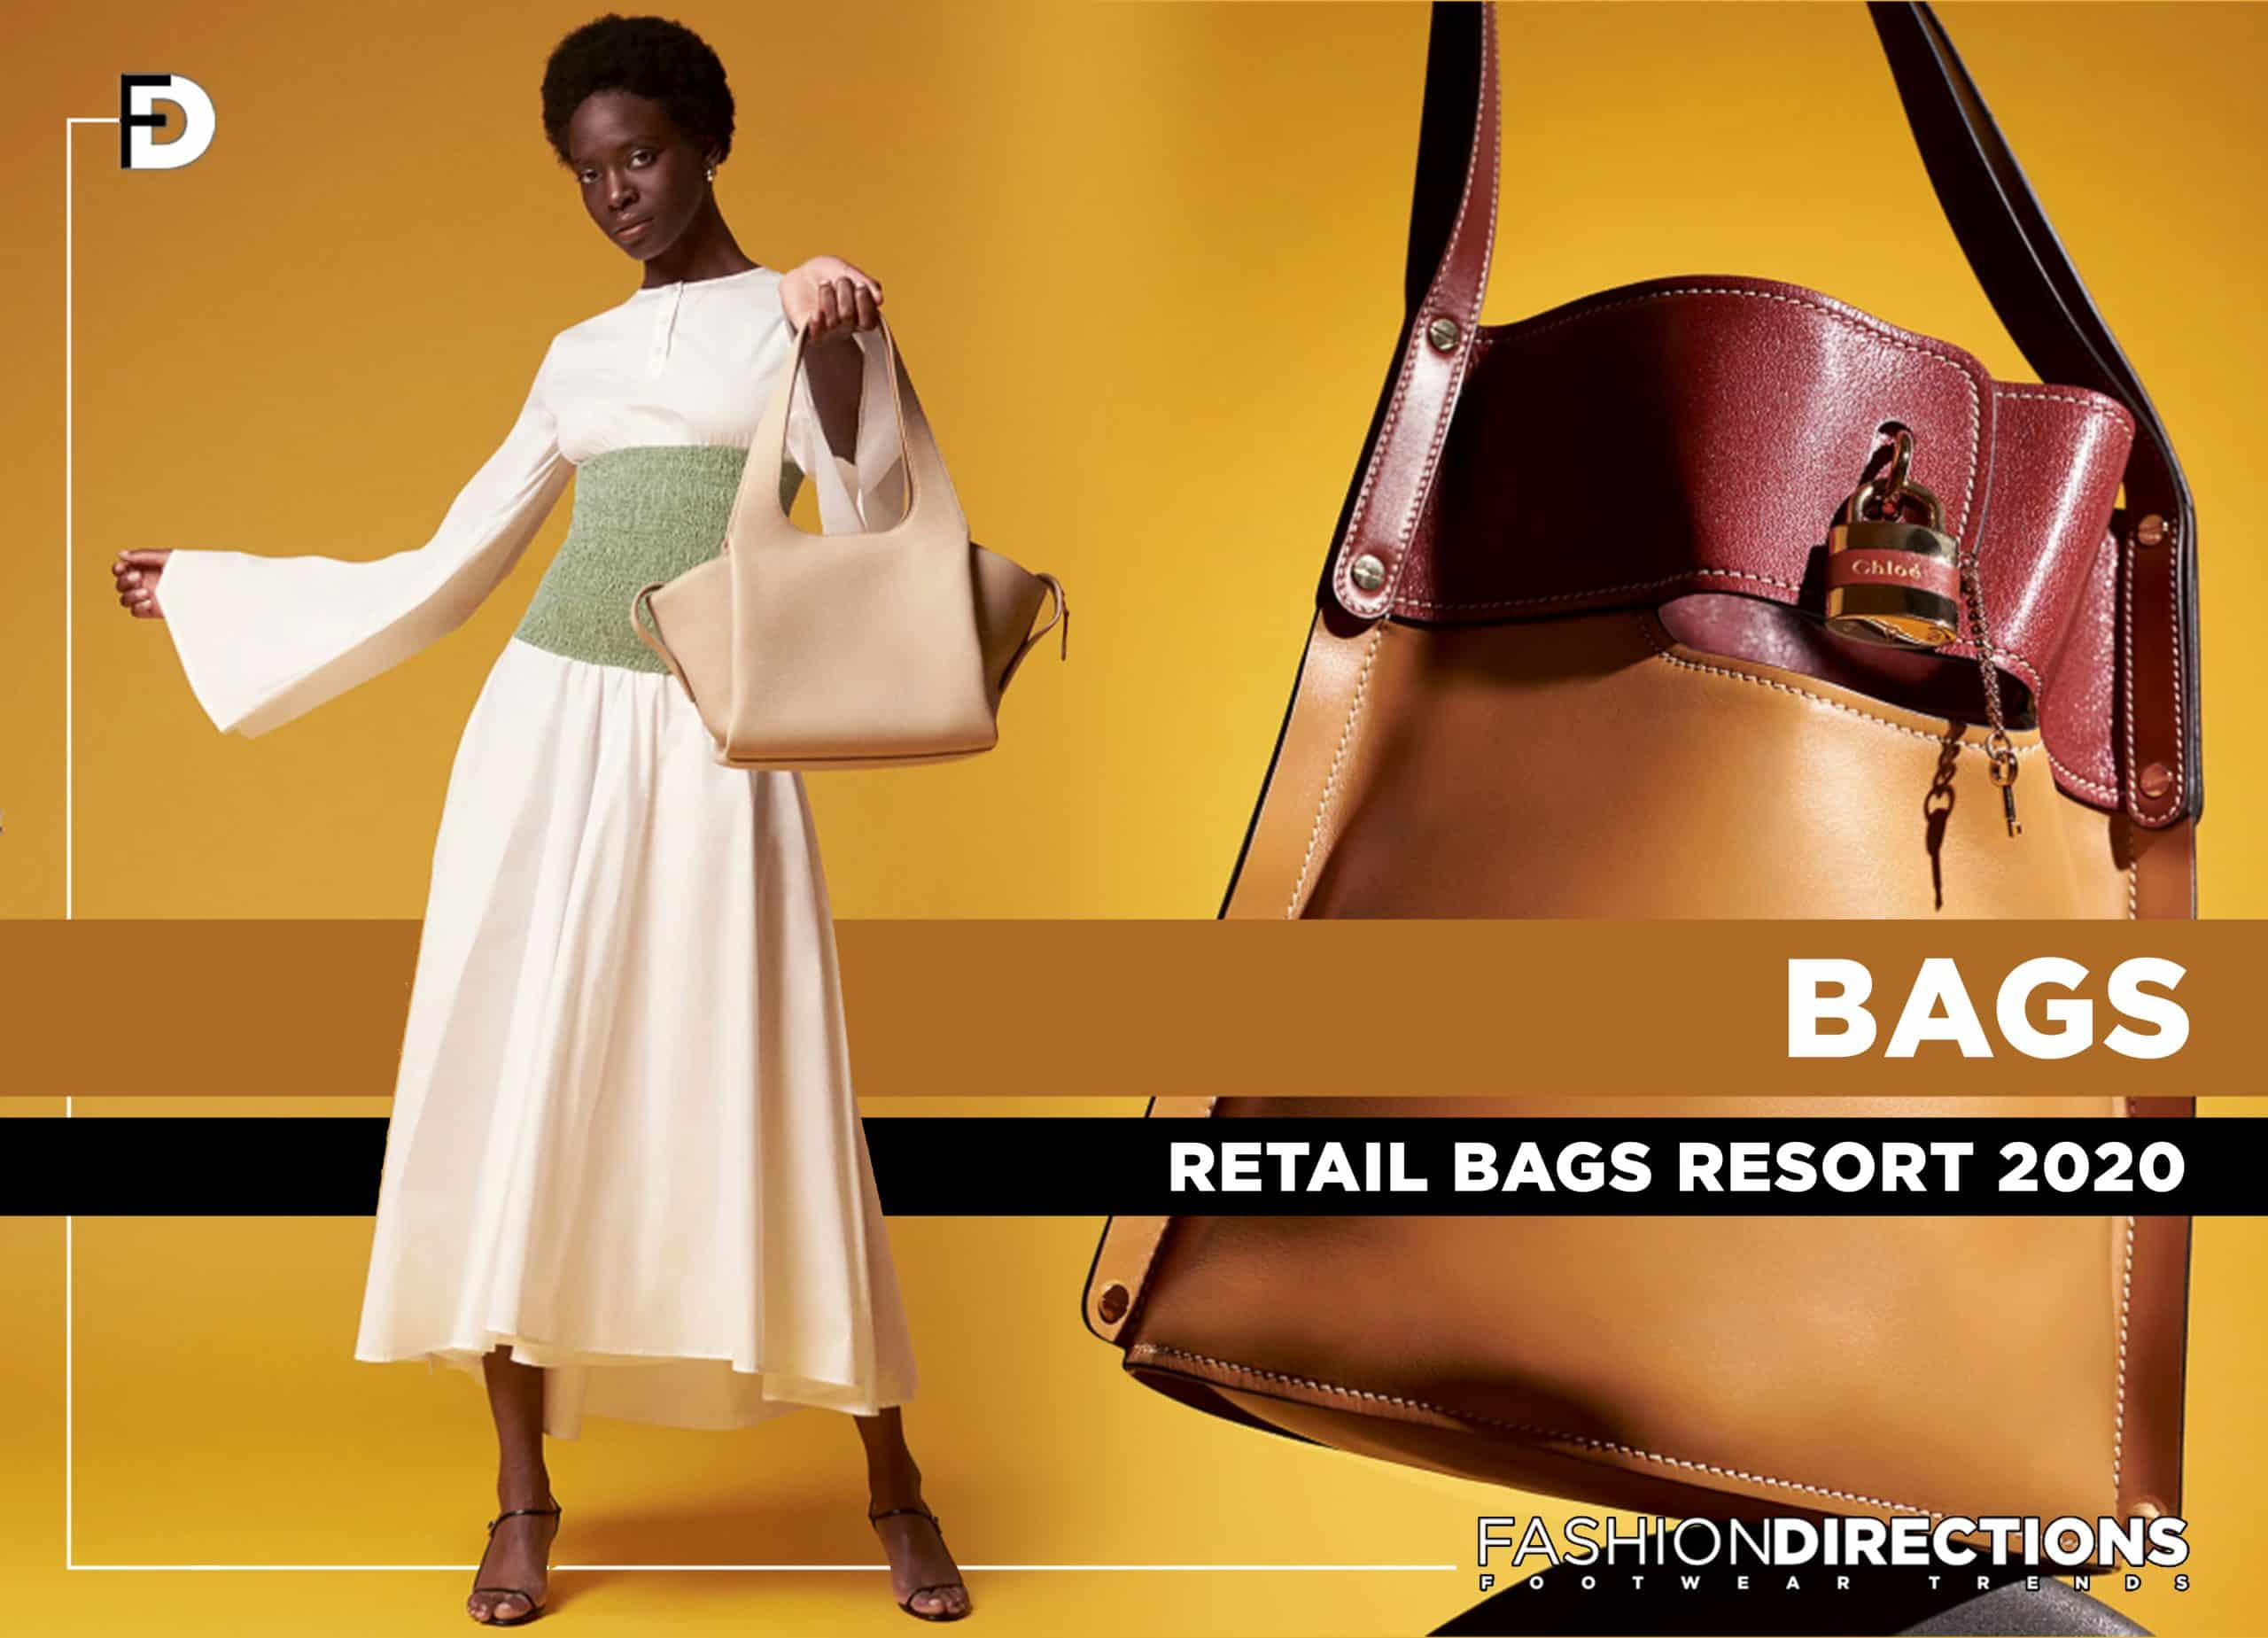 Retail Bags Resort 2020